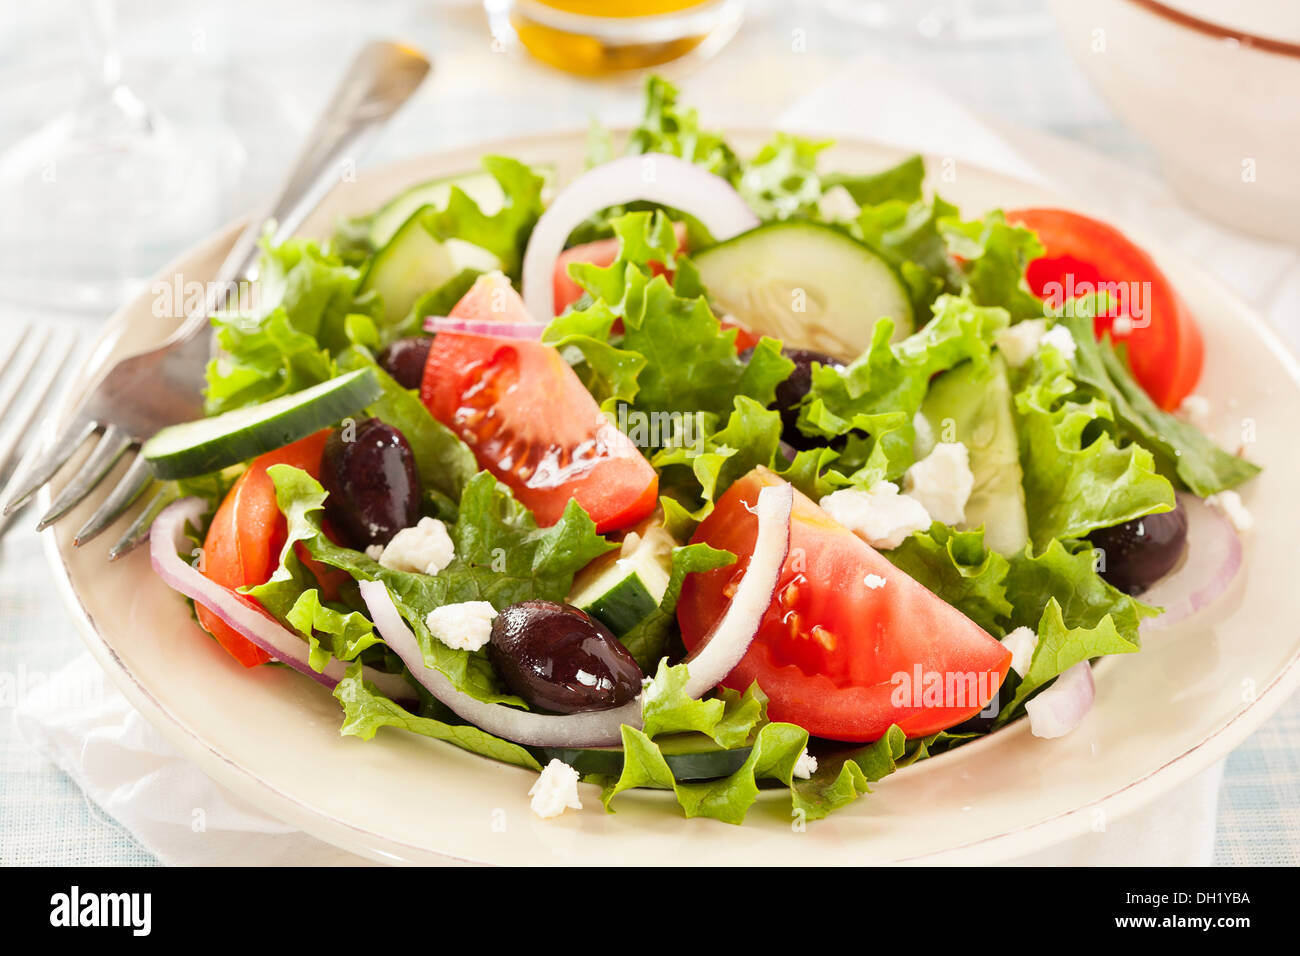 Homemade Organic Greek Salad with Tomato, Olives, and Feta Cheese Stock Photo